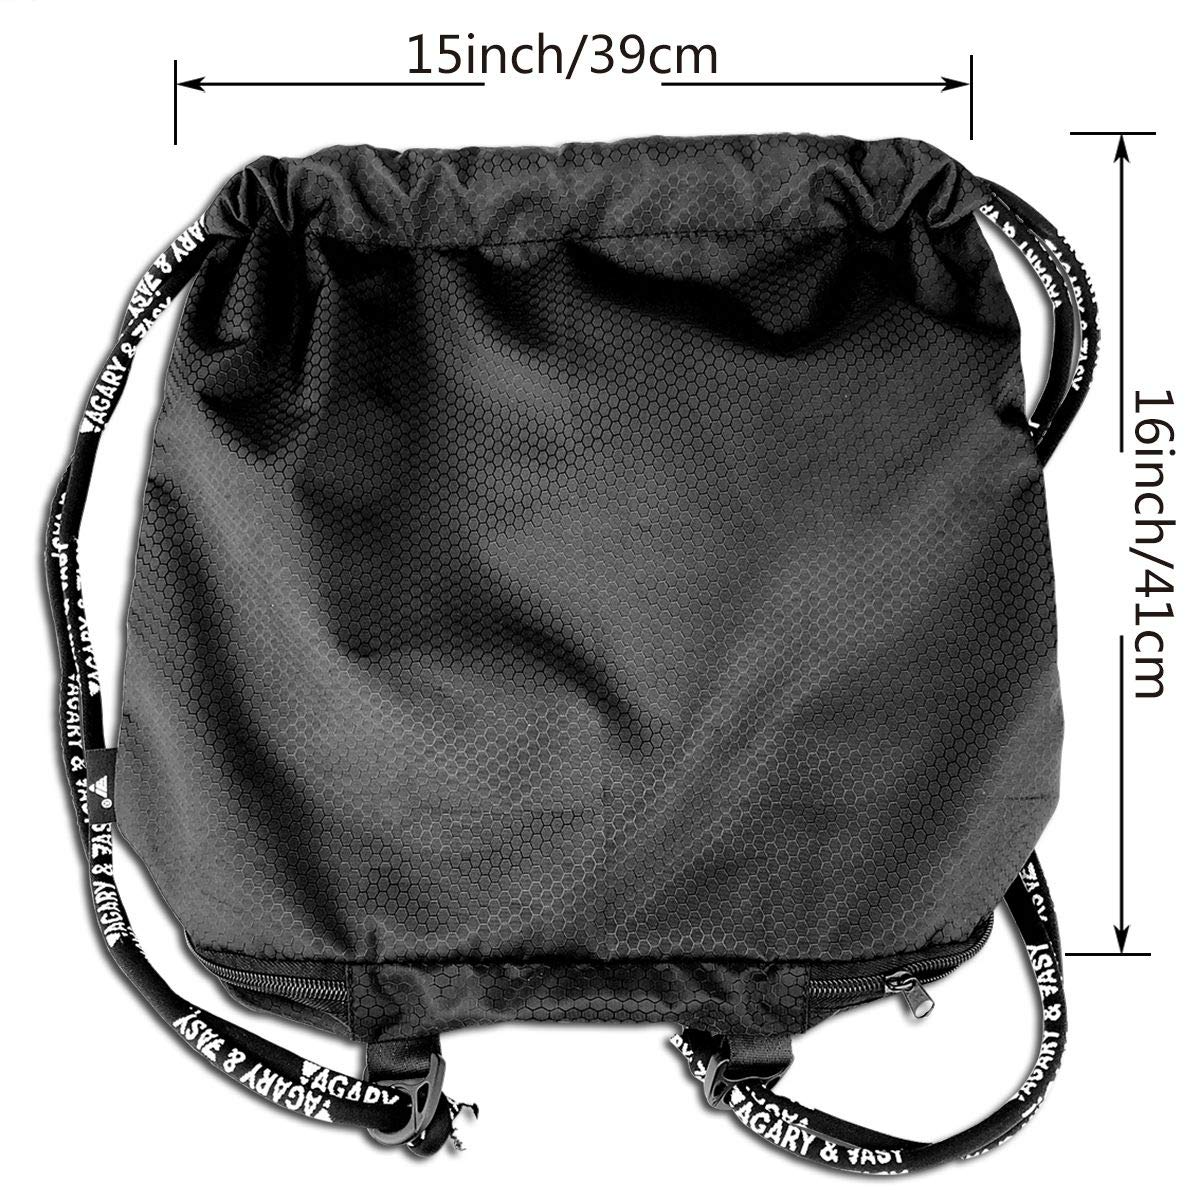 Zol1Q Fruit Drawstring Bag for Men /& Women Large Storage Waterproof Cinch Backpack Sackpack Tote Sack for Gym Travel